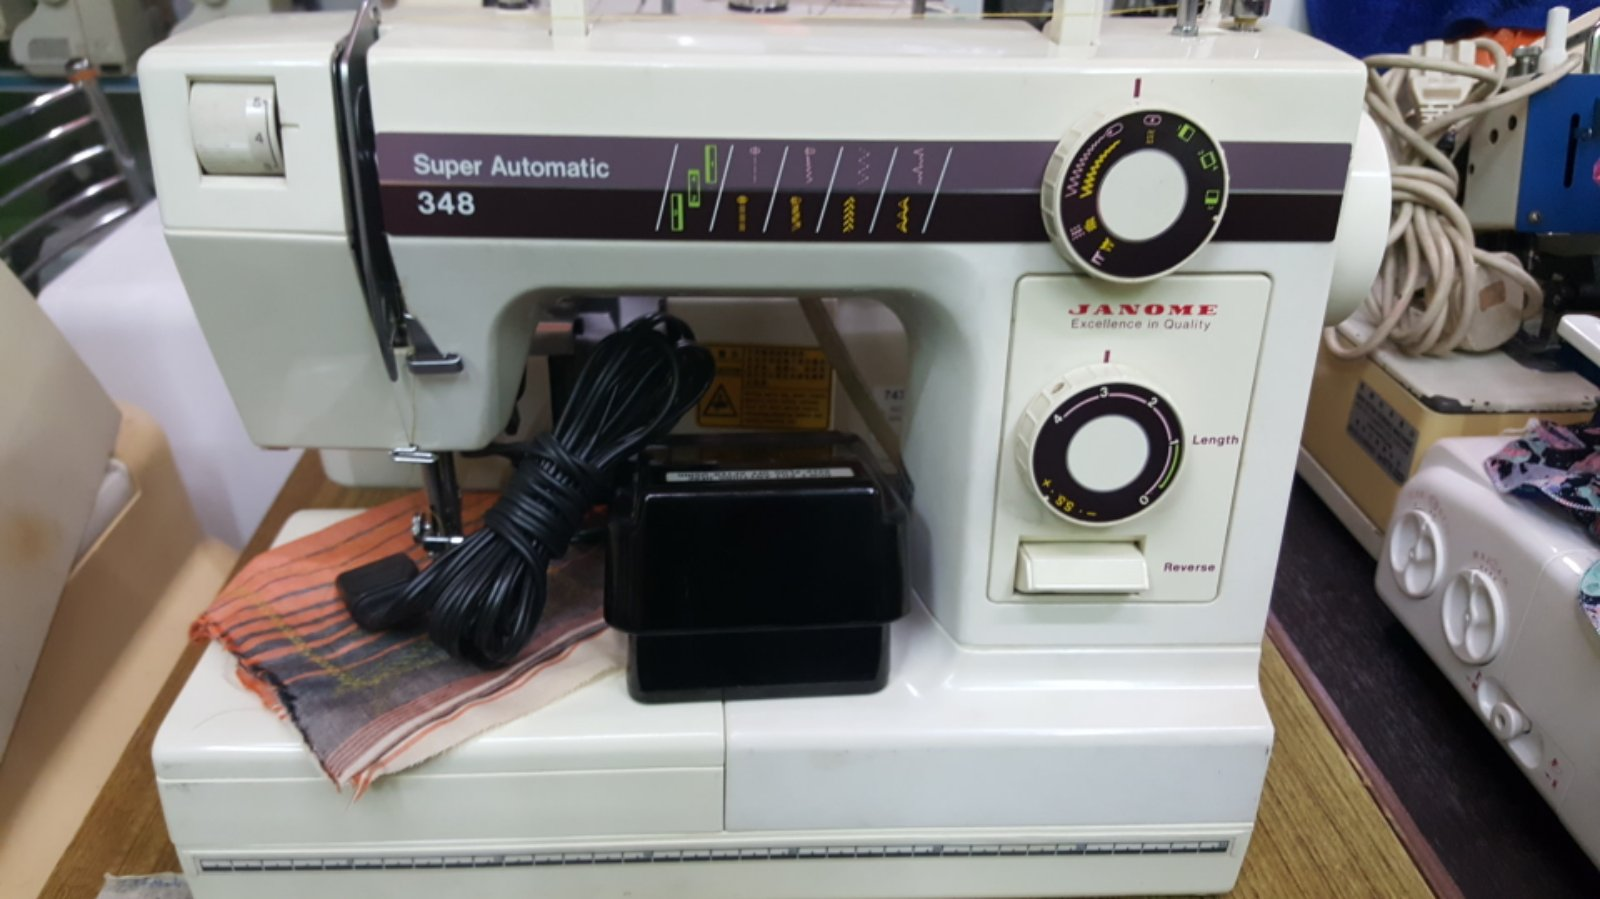 Sevis Janome Portable Sewing Machine